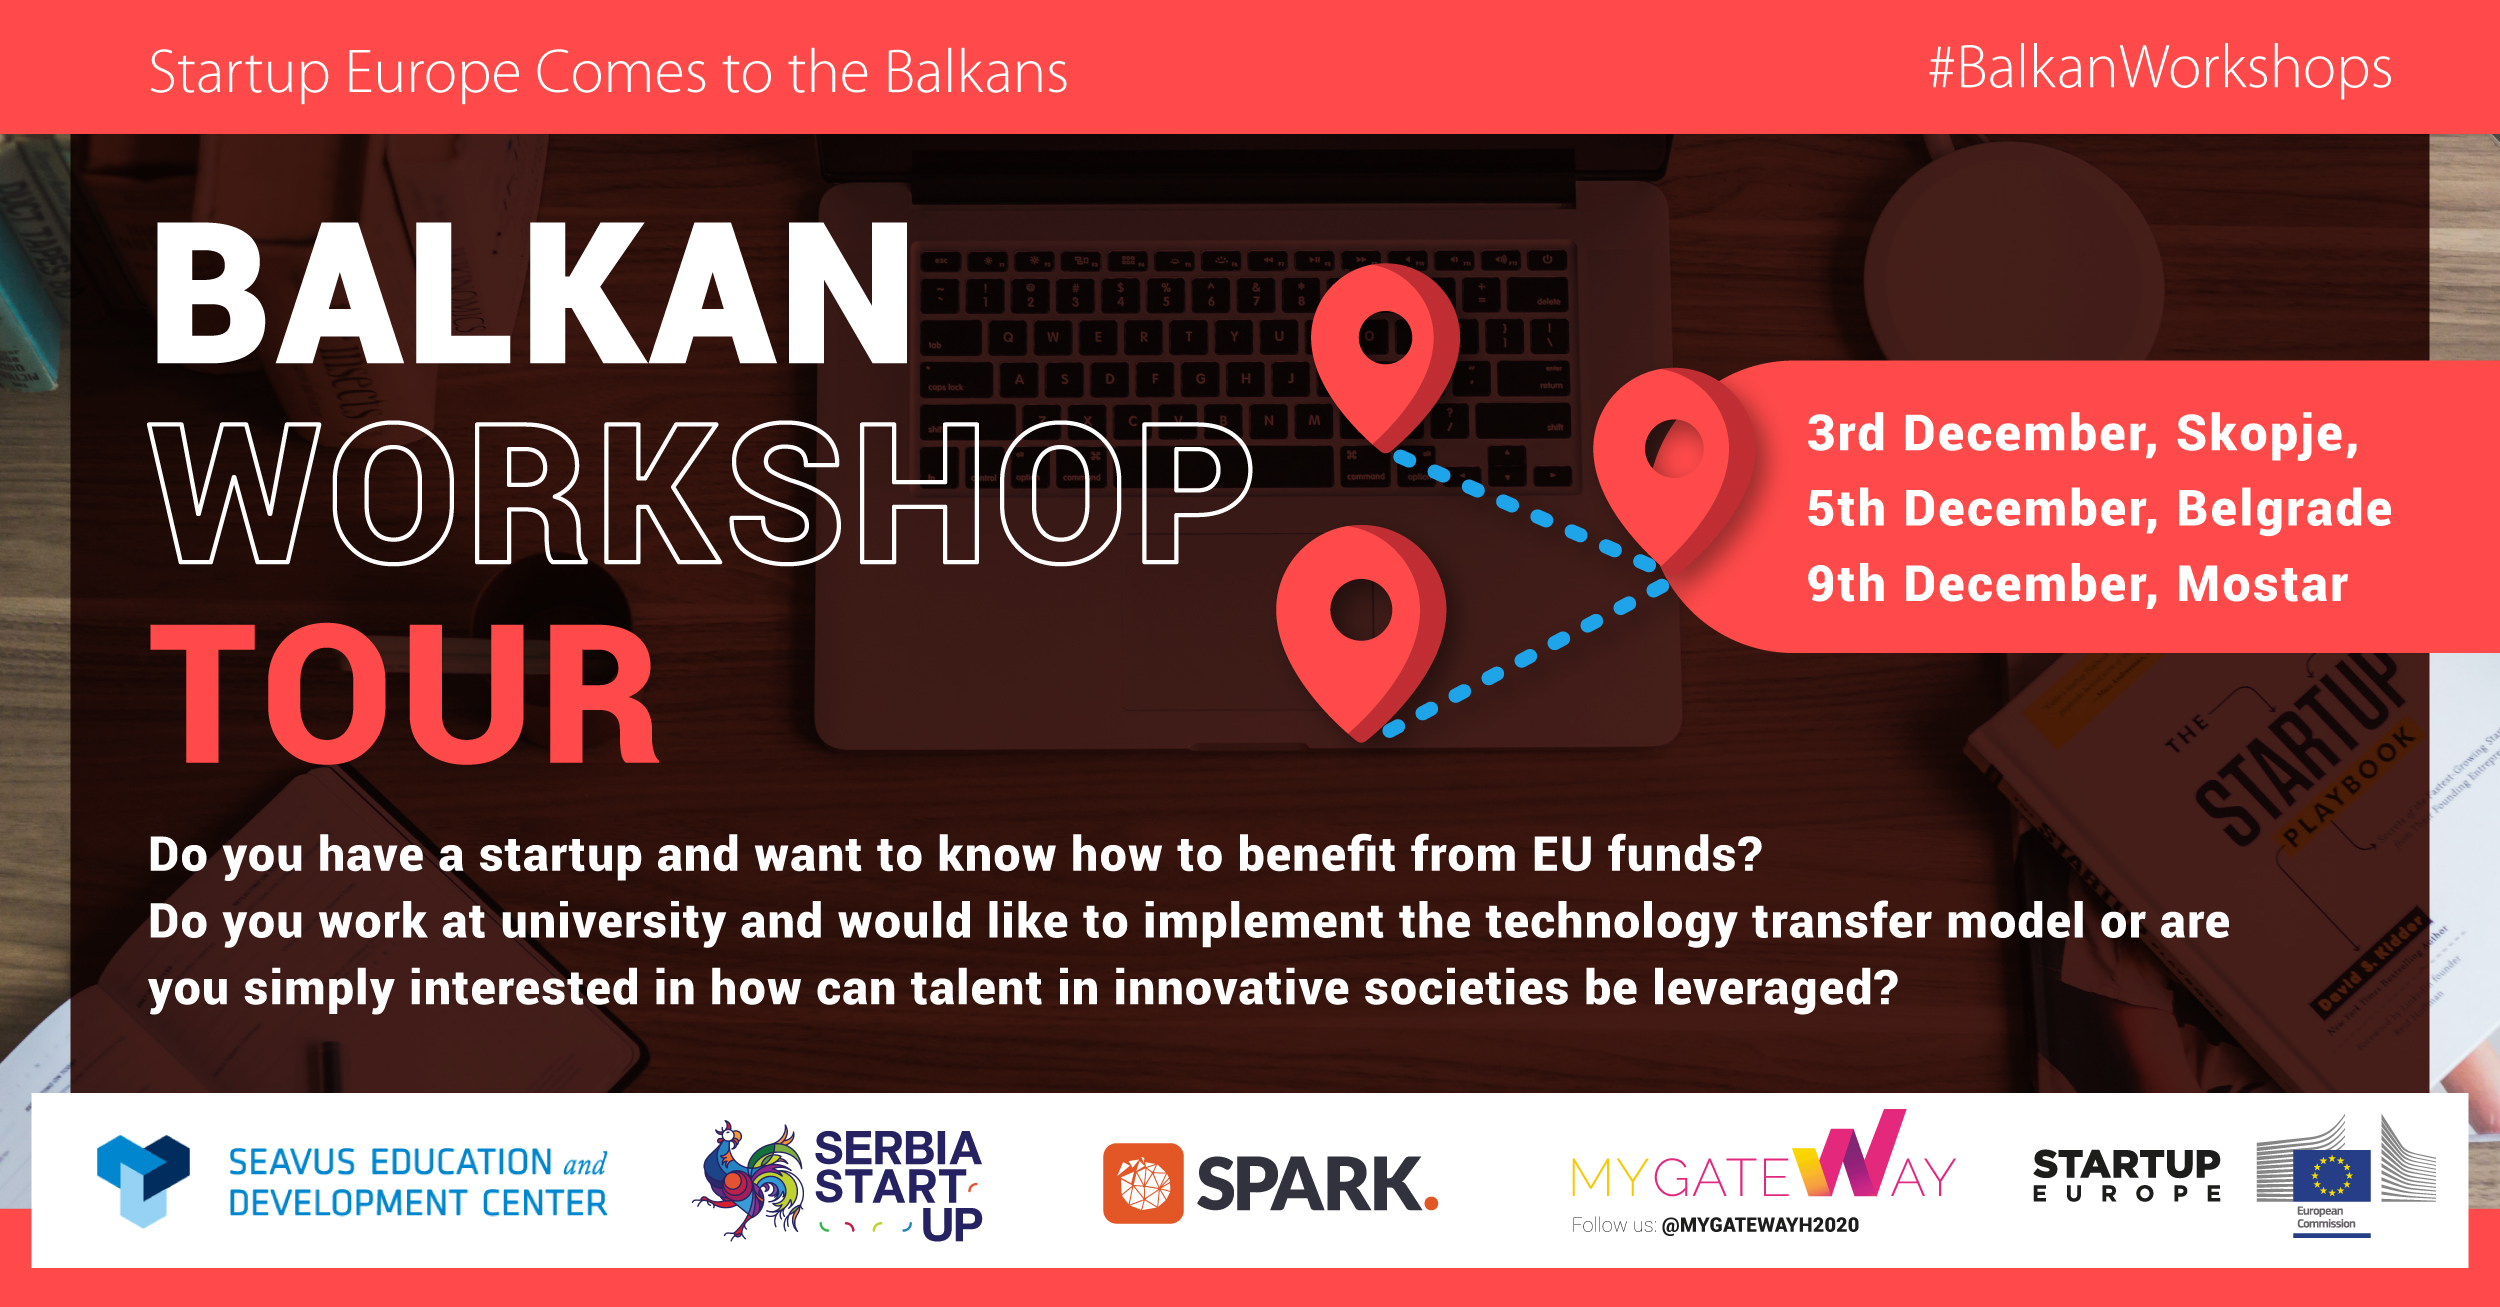 Startup Europe comes to the Balkans